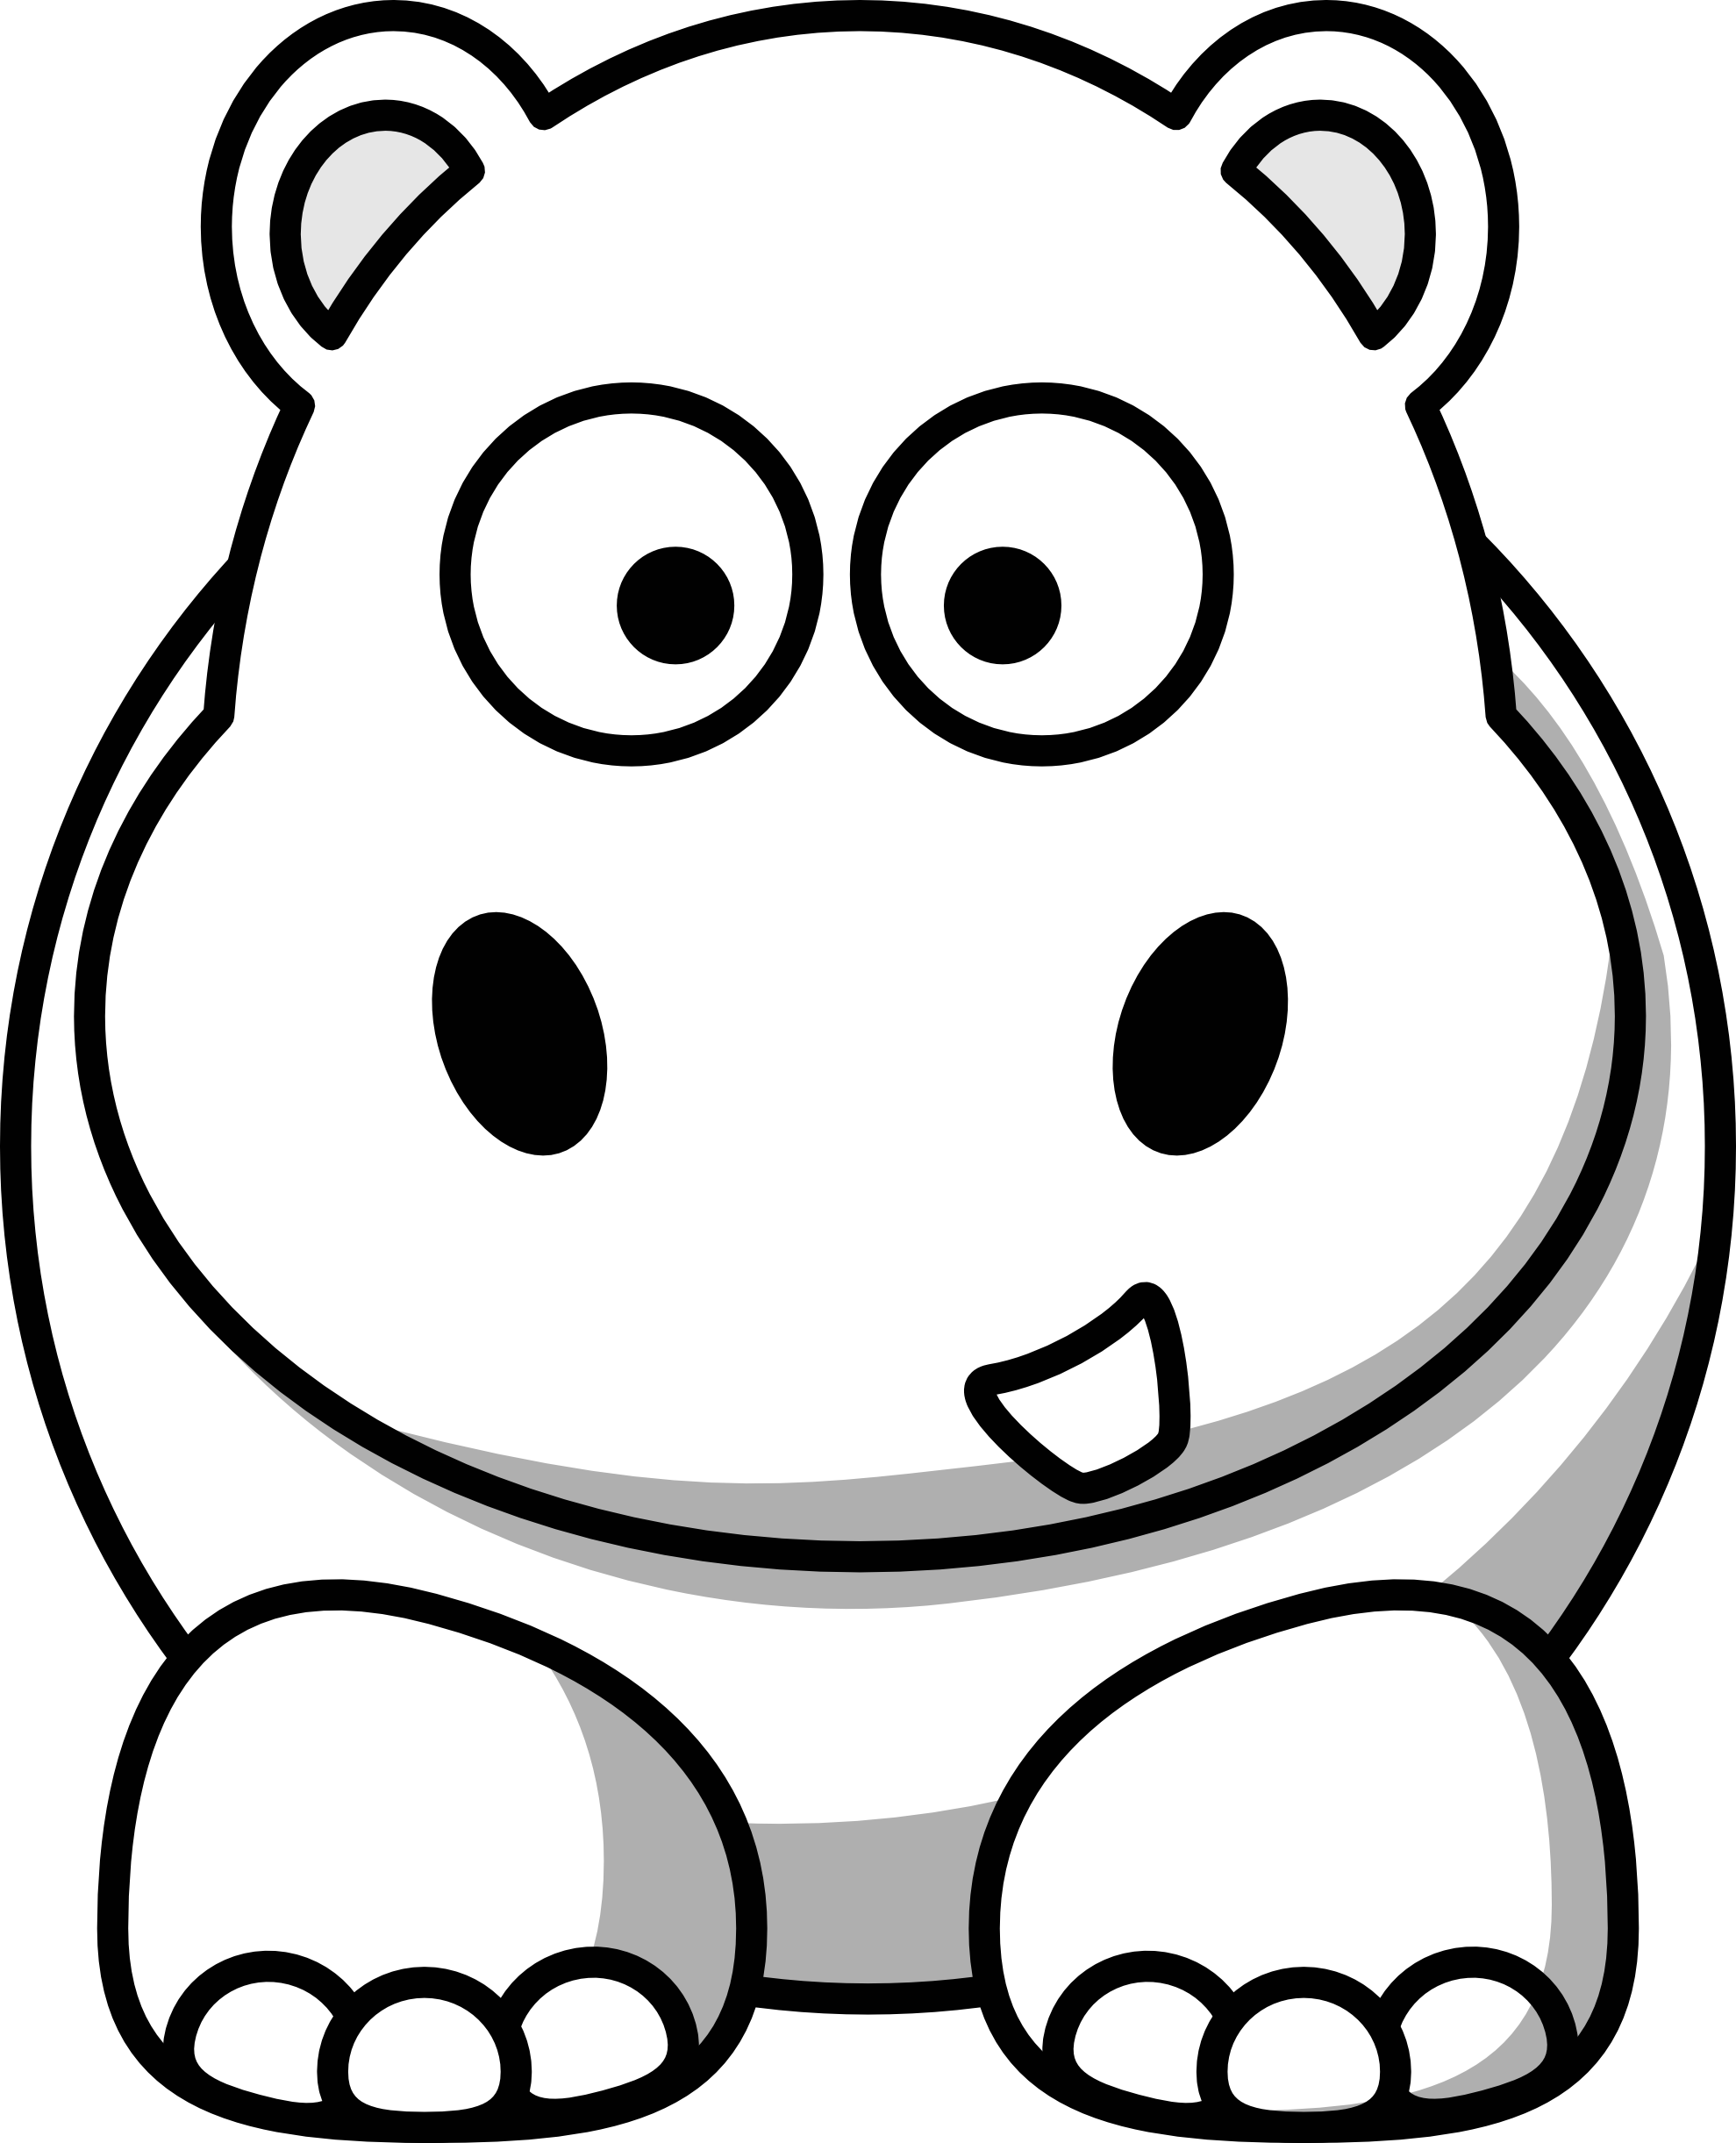 Clipart hippo cool. Clip art black and